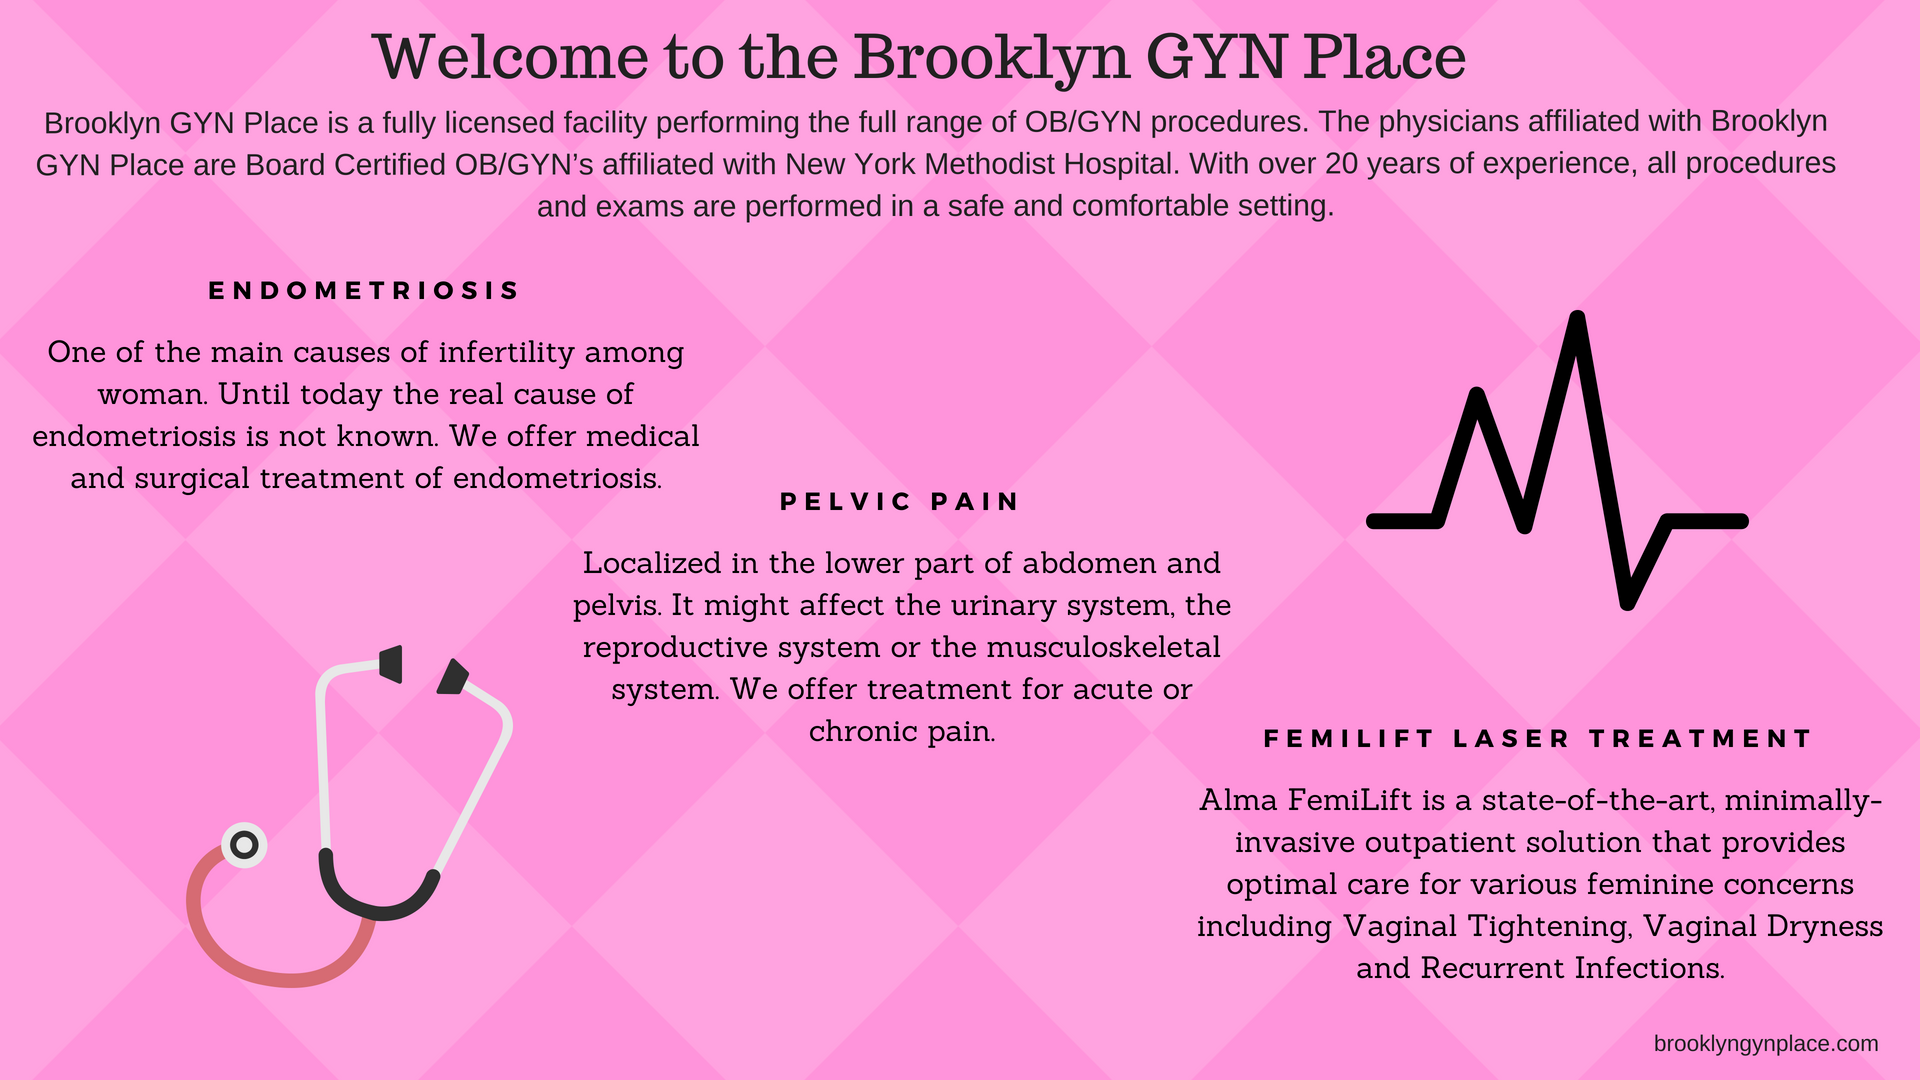 Brooklyn Gynecology Place